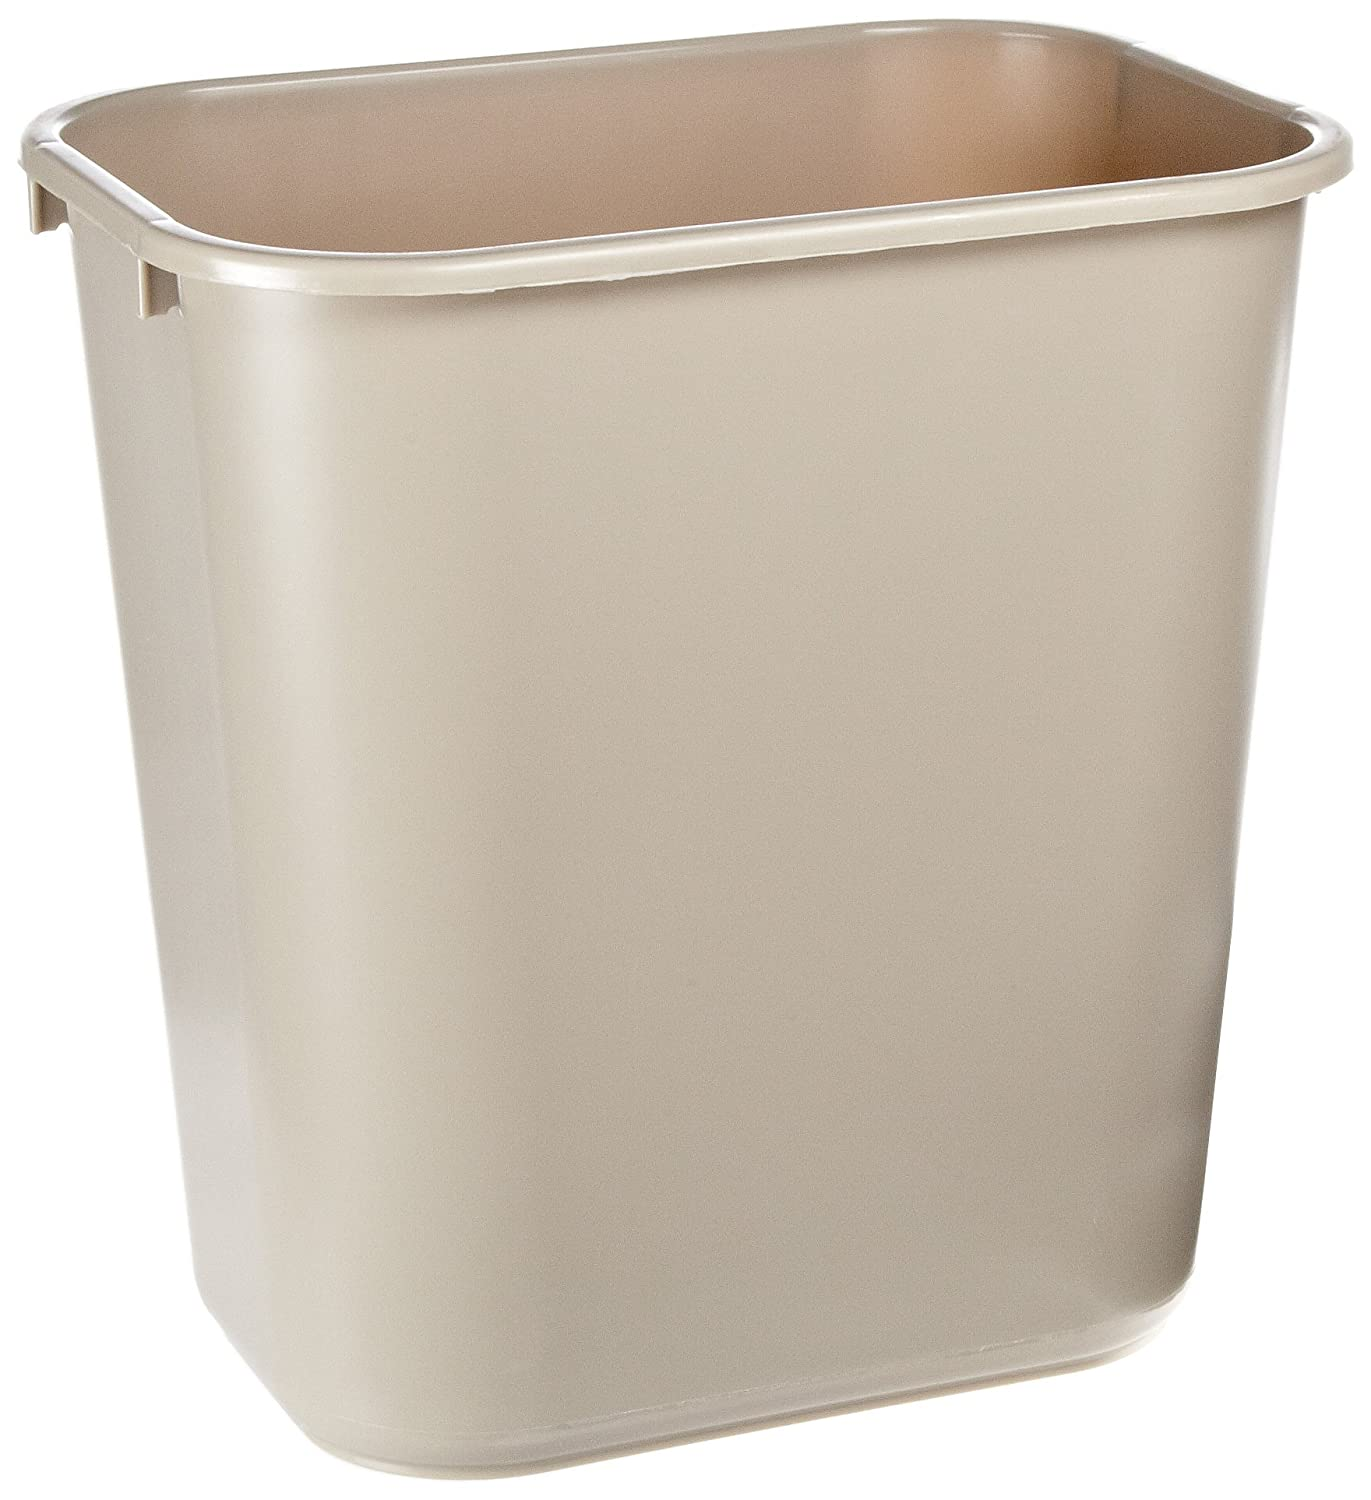 Rubbermaid Commercial Products FG295600BEIG Plastic Resin Deskside Wastebasket, 7 Gallon/28 Quart, Beige (Pack of 12)